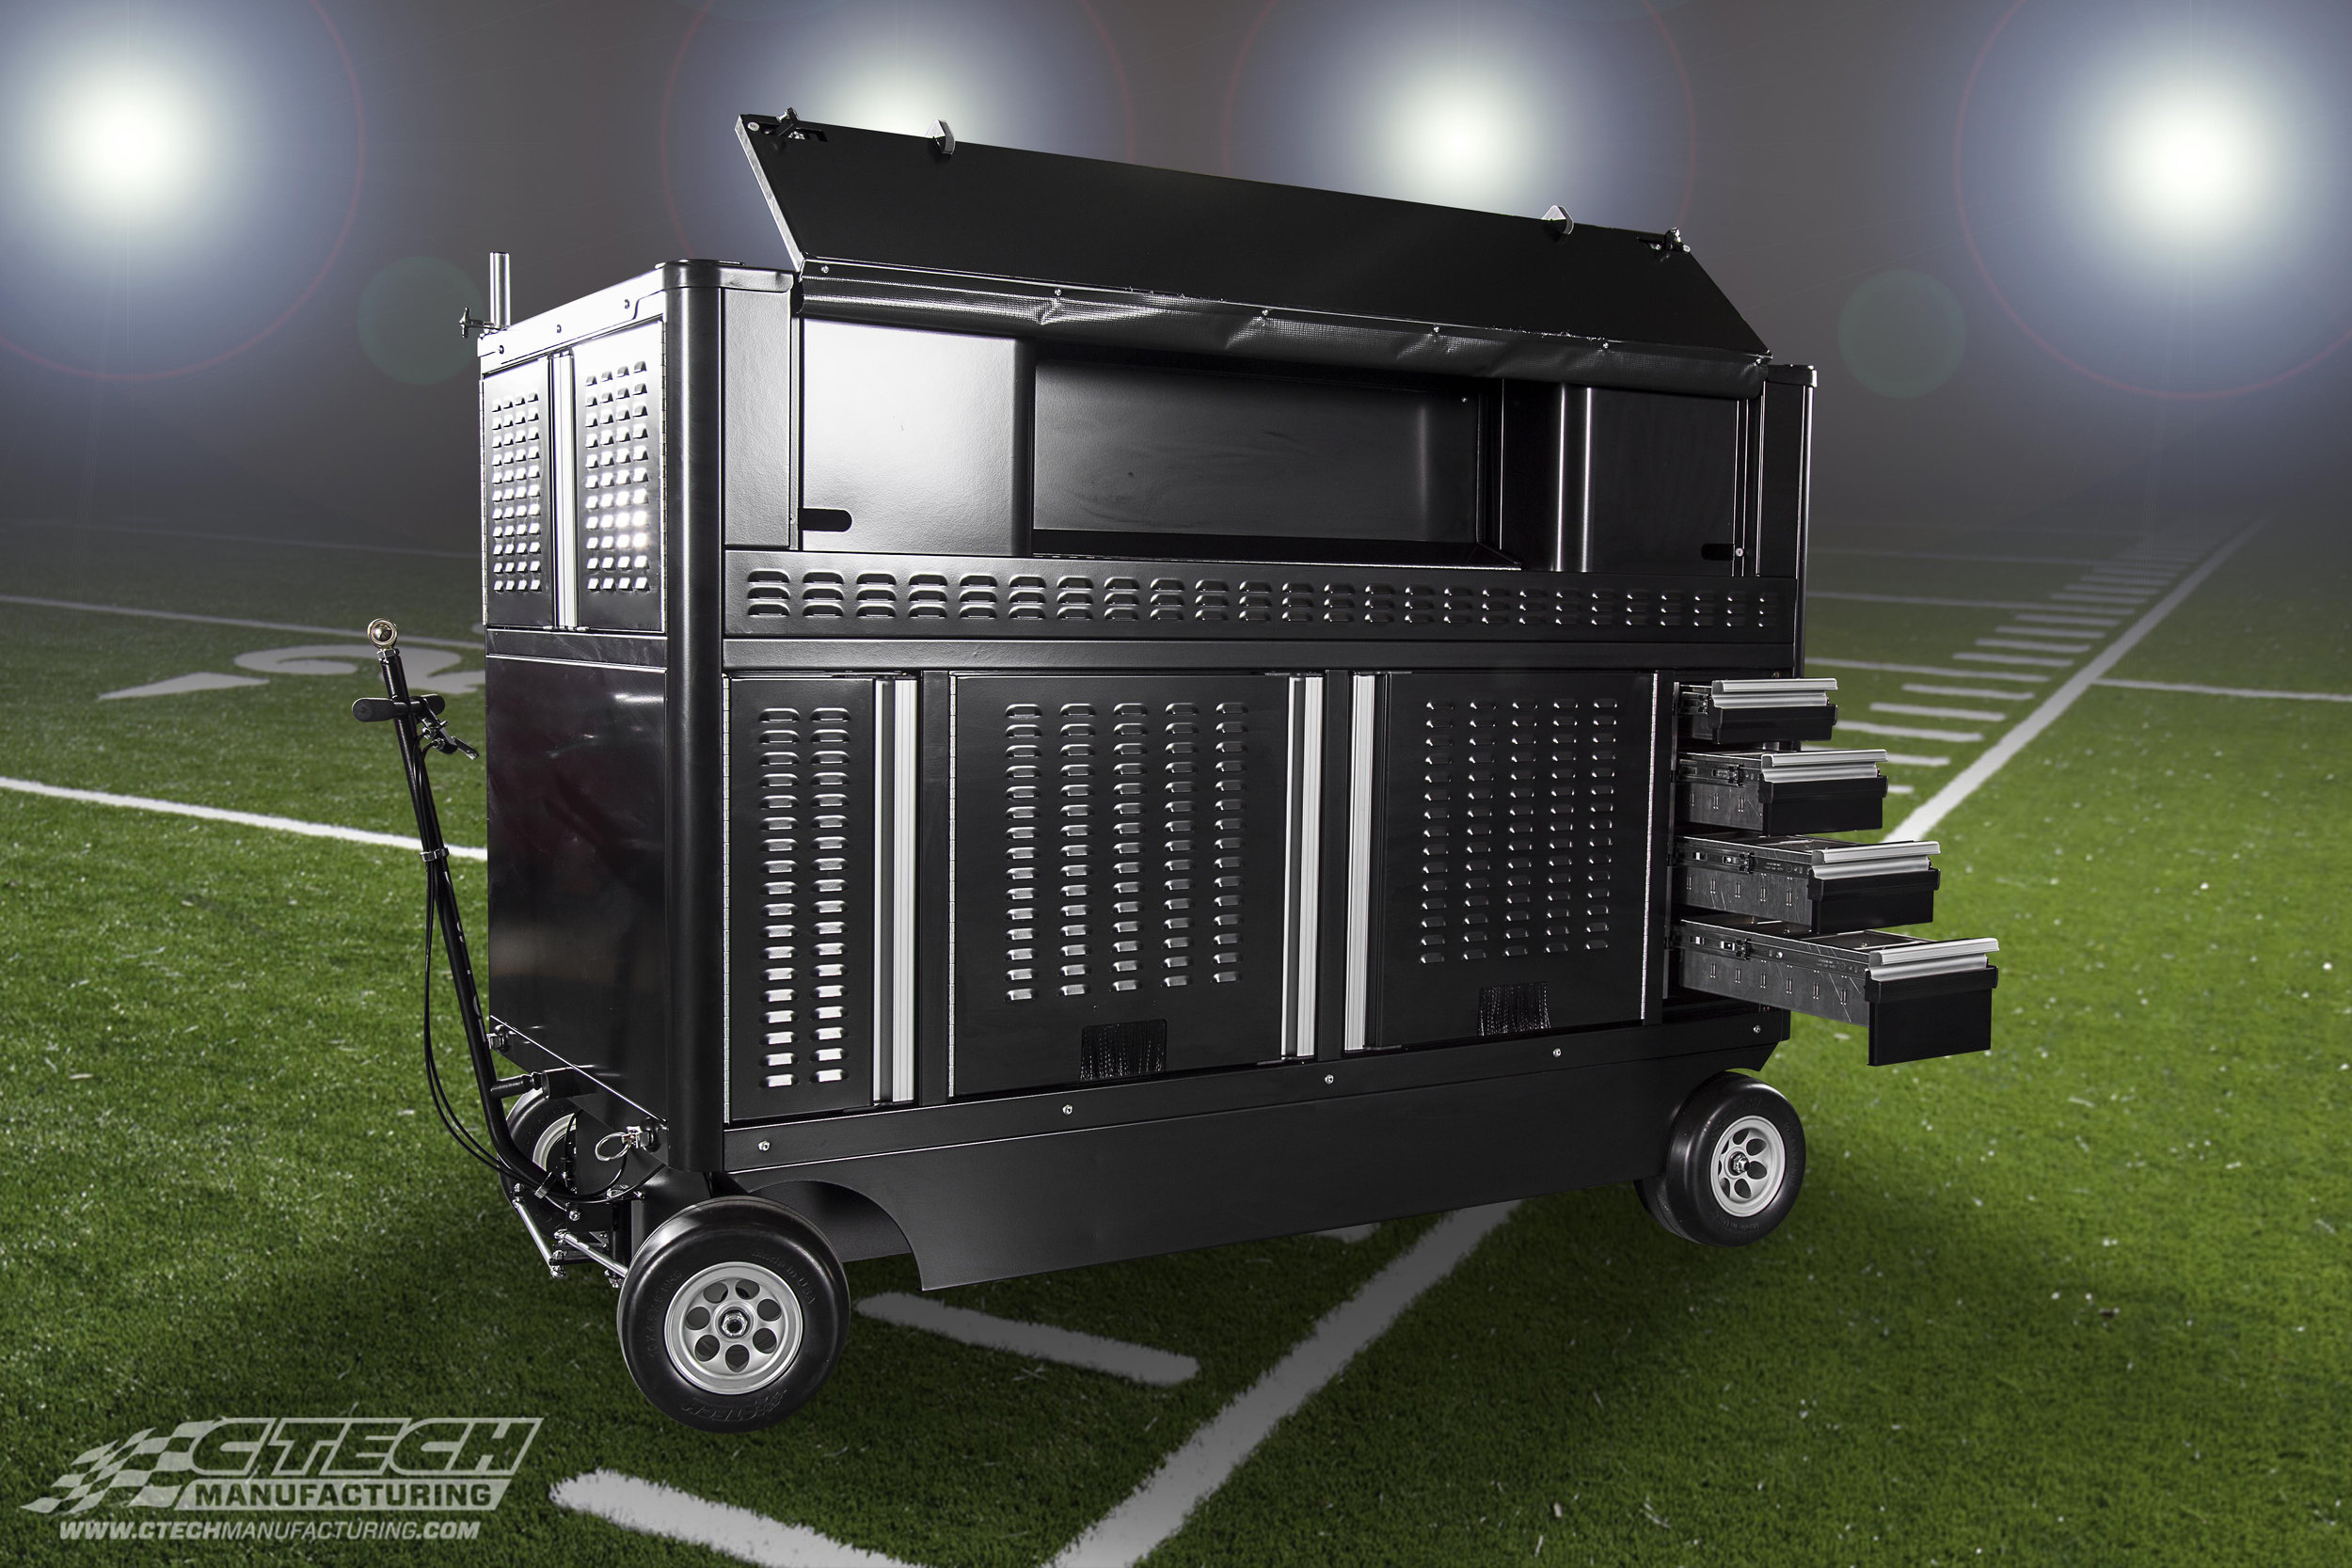 If you've ever watched an NFL game, you've probably seen a CTECH Digital Communication Cart in action! These carts keep media equipment safe, organized, and readilly mobile during the big game.